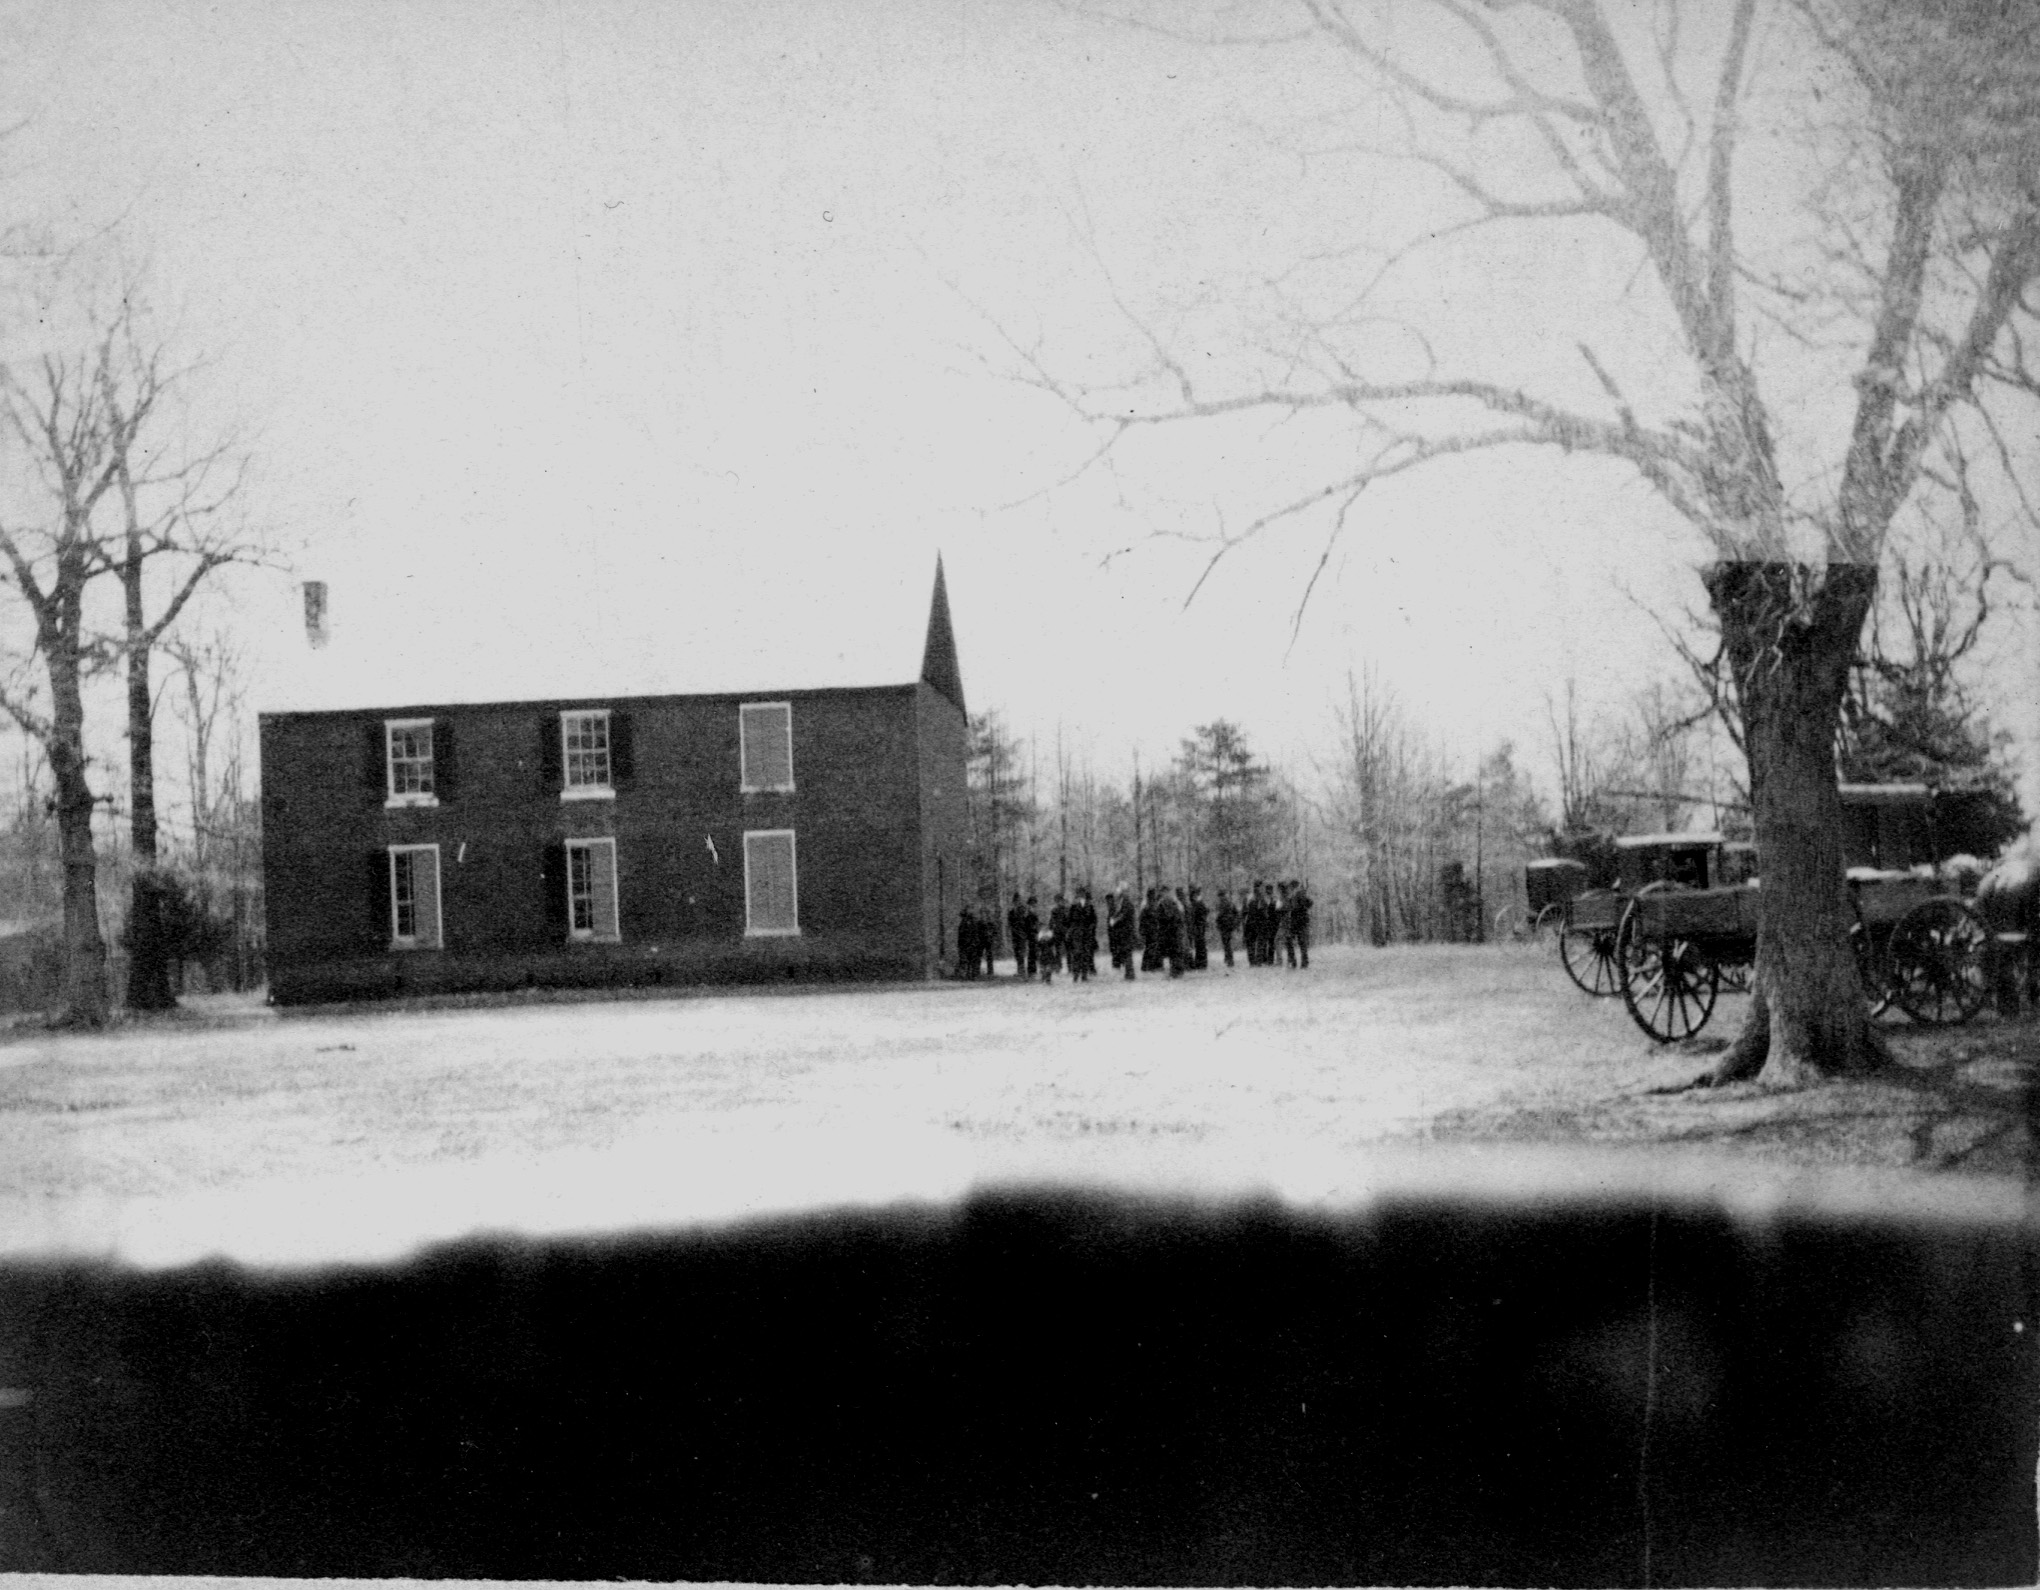 Black and white photo of veterans gathering to the right of a two-story, rectangular, brick building.